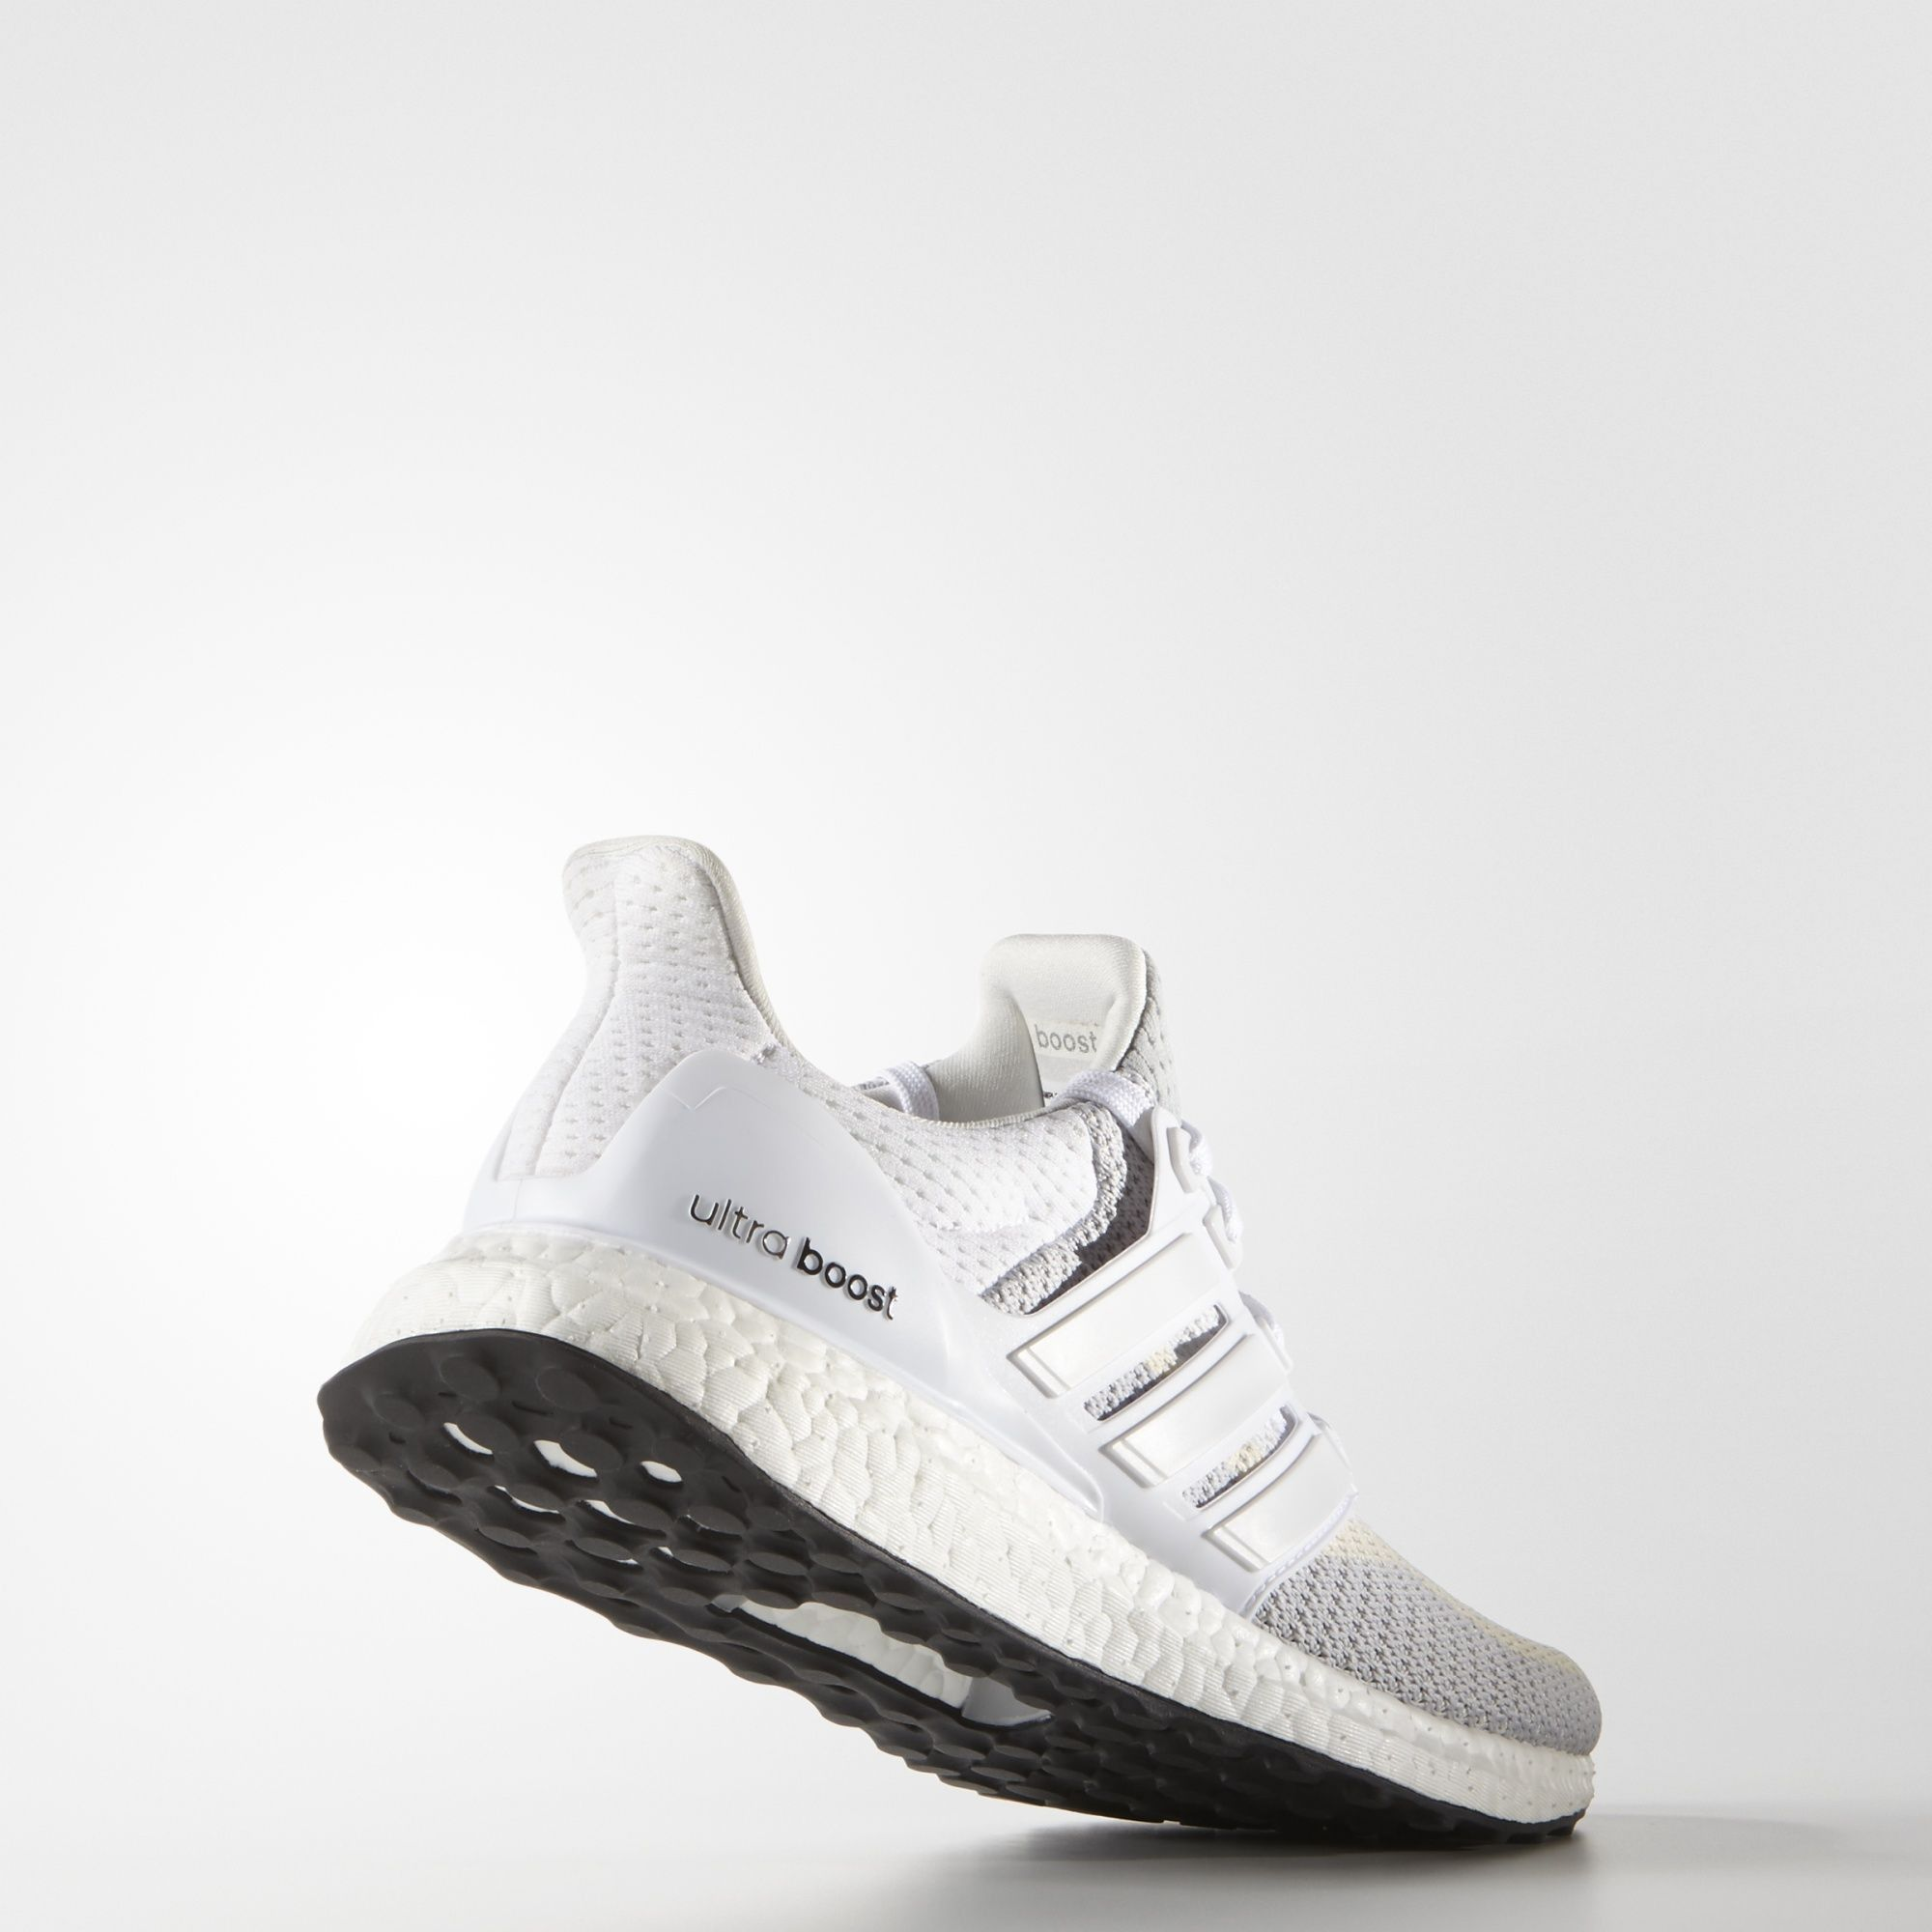 adidas Ultra Boost w in Weiß Grau